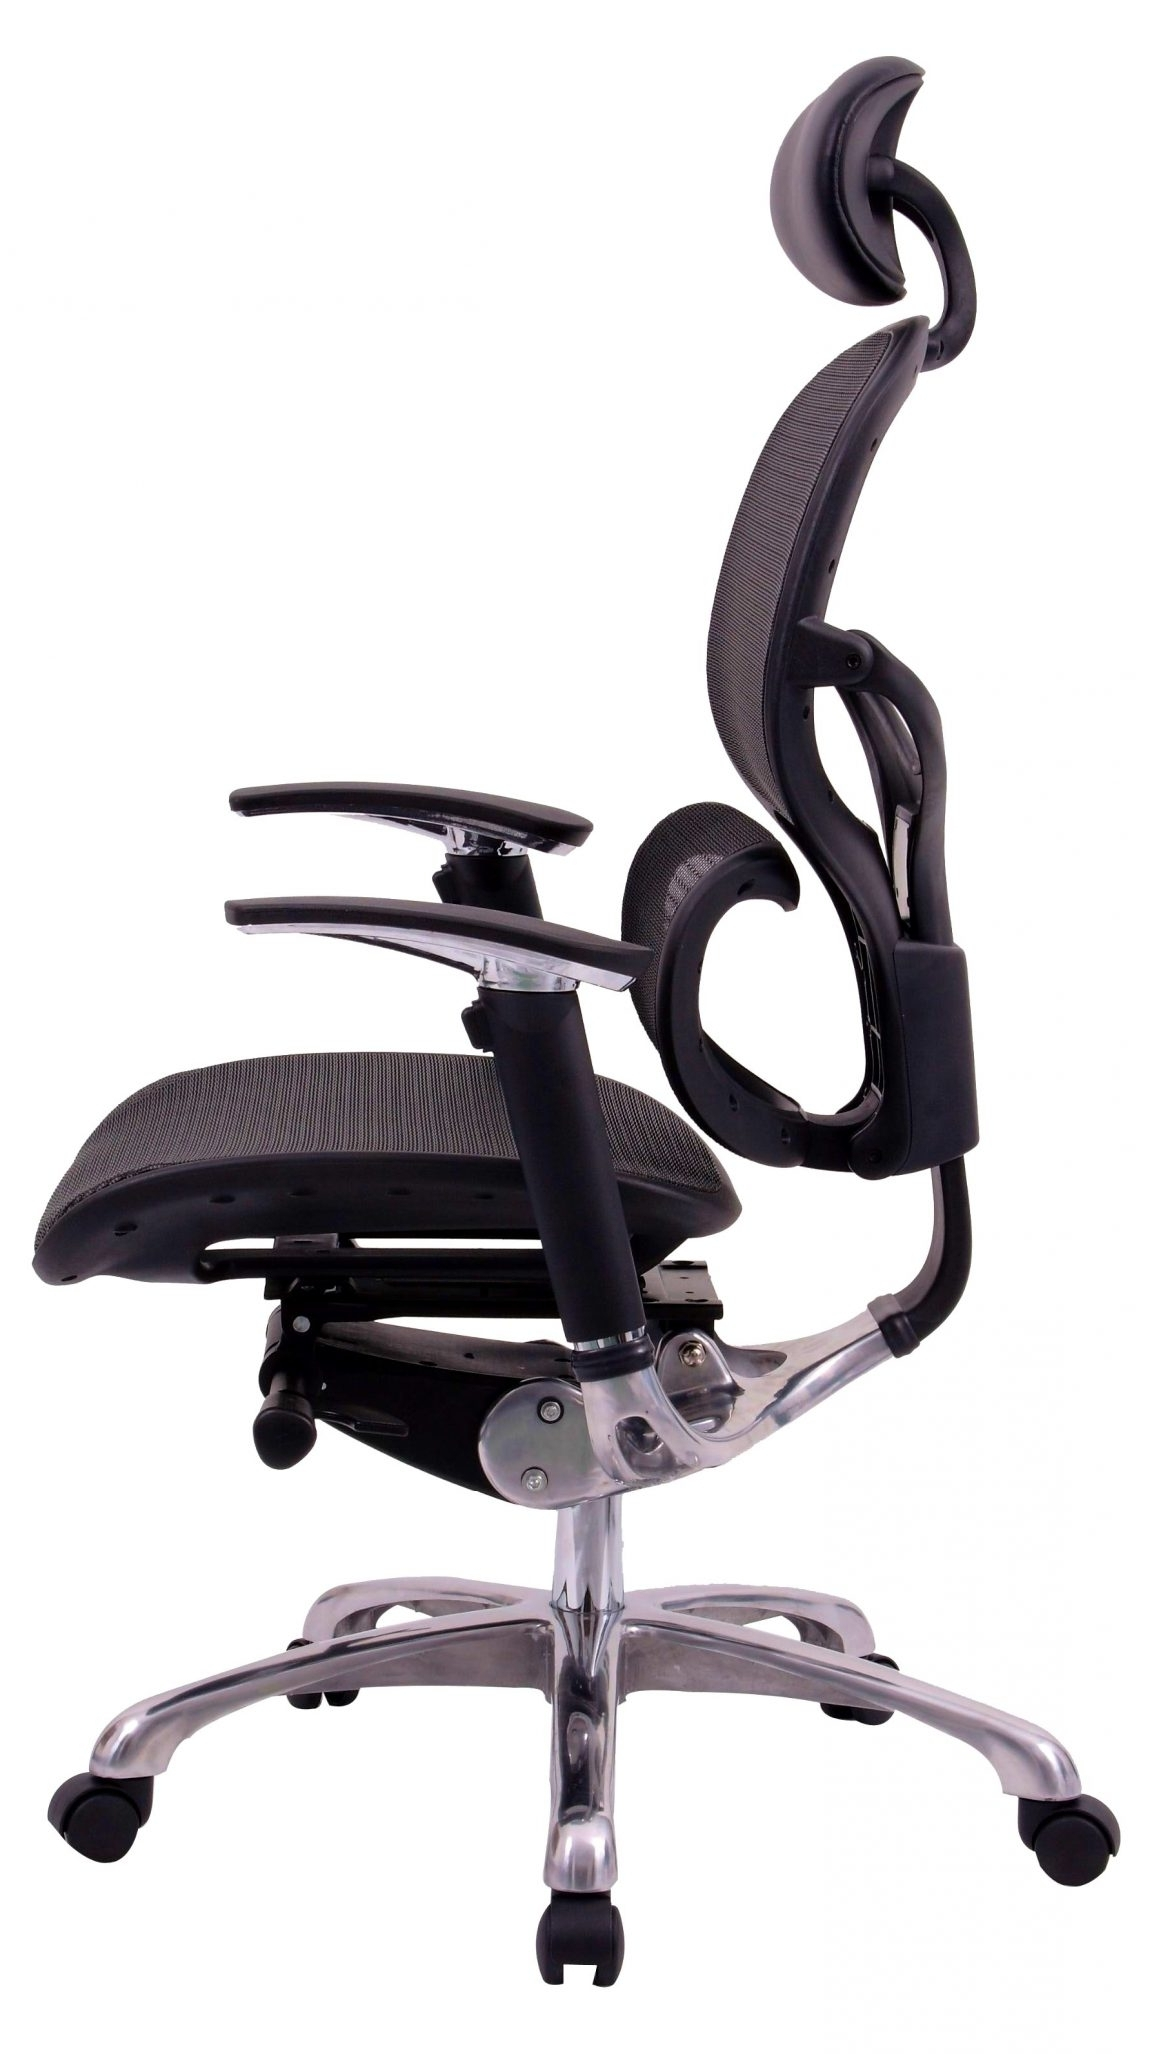 quality chair back org best for cryomats reviews executive image furniture rated stirring leather chairs top support office